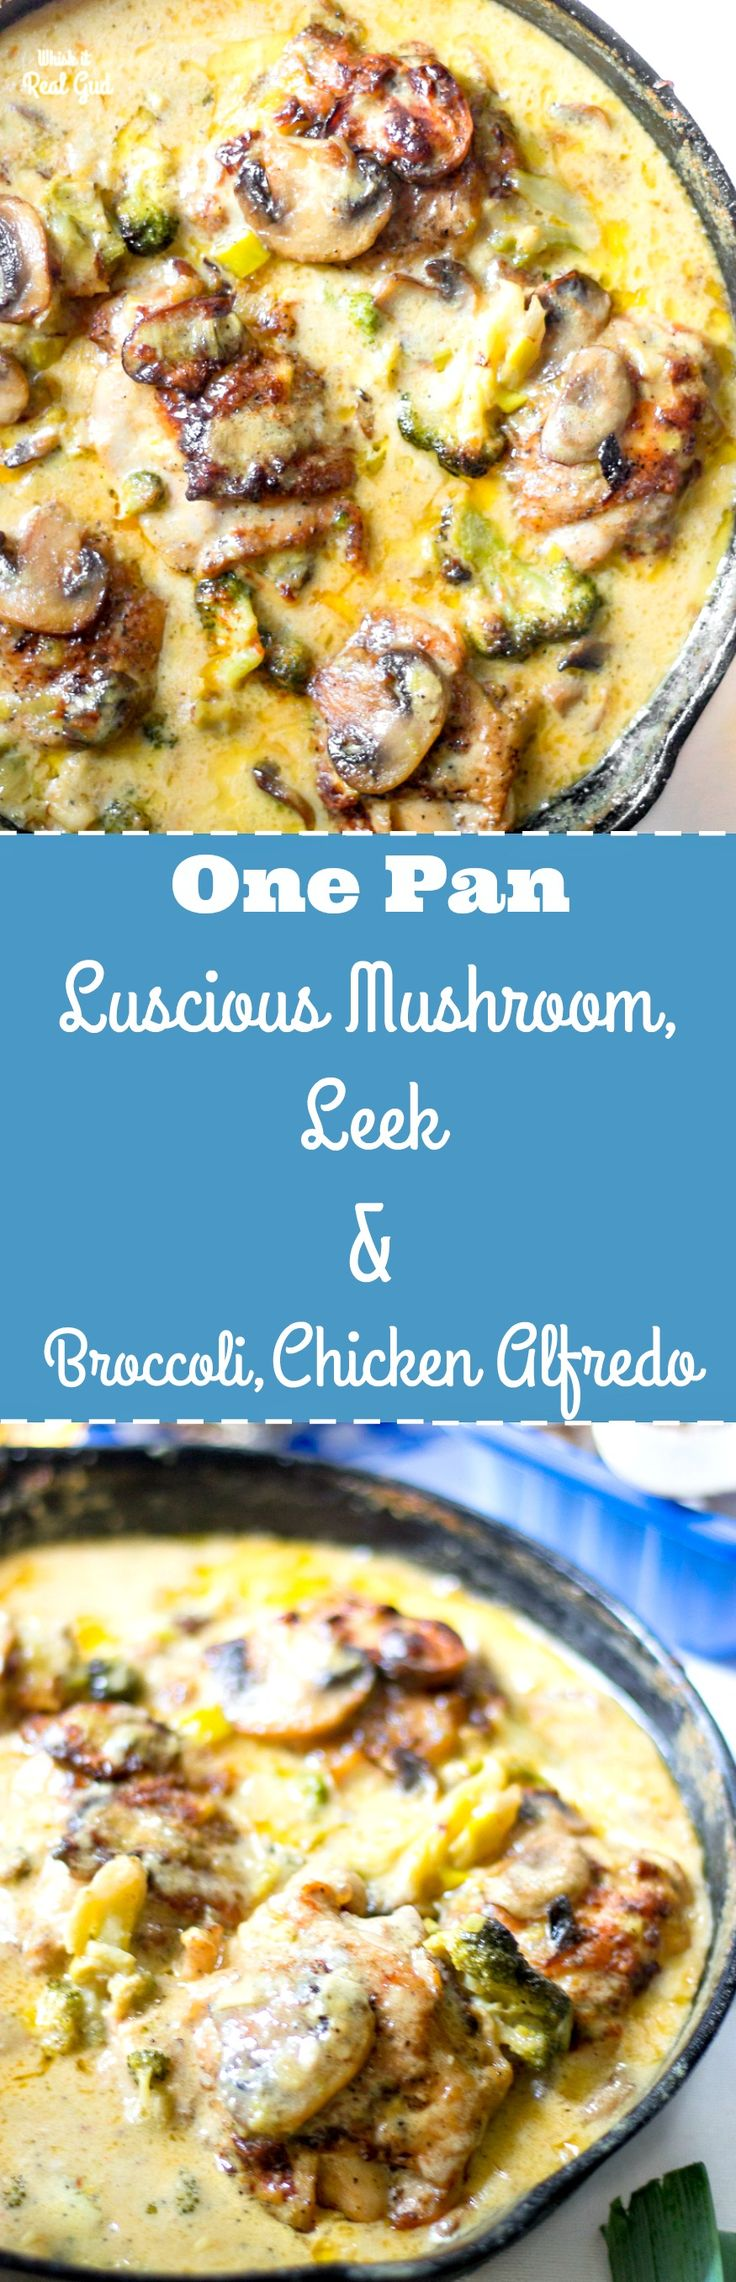 Easy One Pan Luscious Broccoli Mushroom and Leek Chicken Alfredo. This one pan Chicken Alfredo recipe will become your favorite!